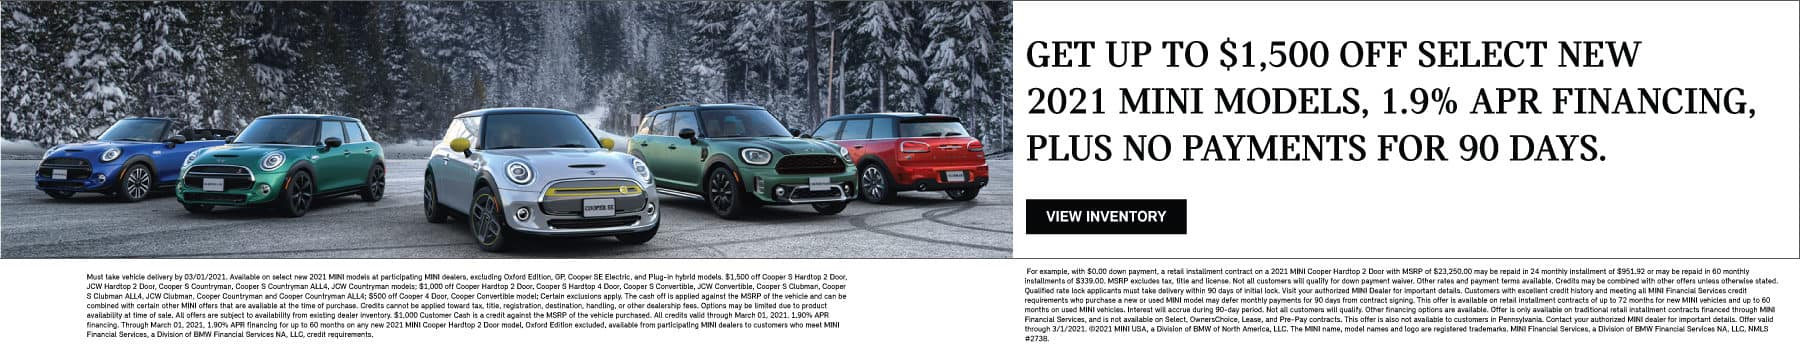 Up to $1500 off select MINI models. 1.9% APR financing plus no payments for 90 days.